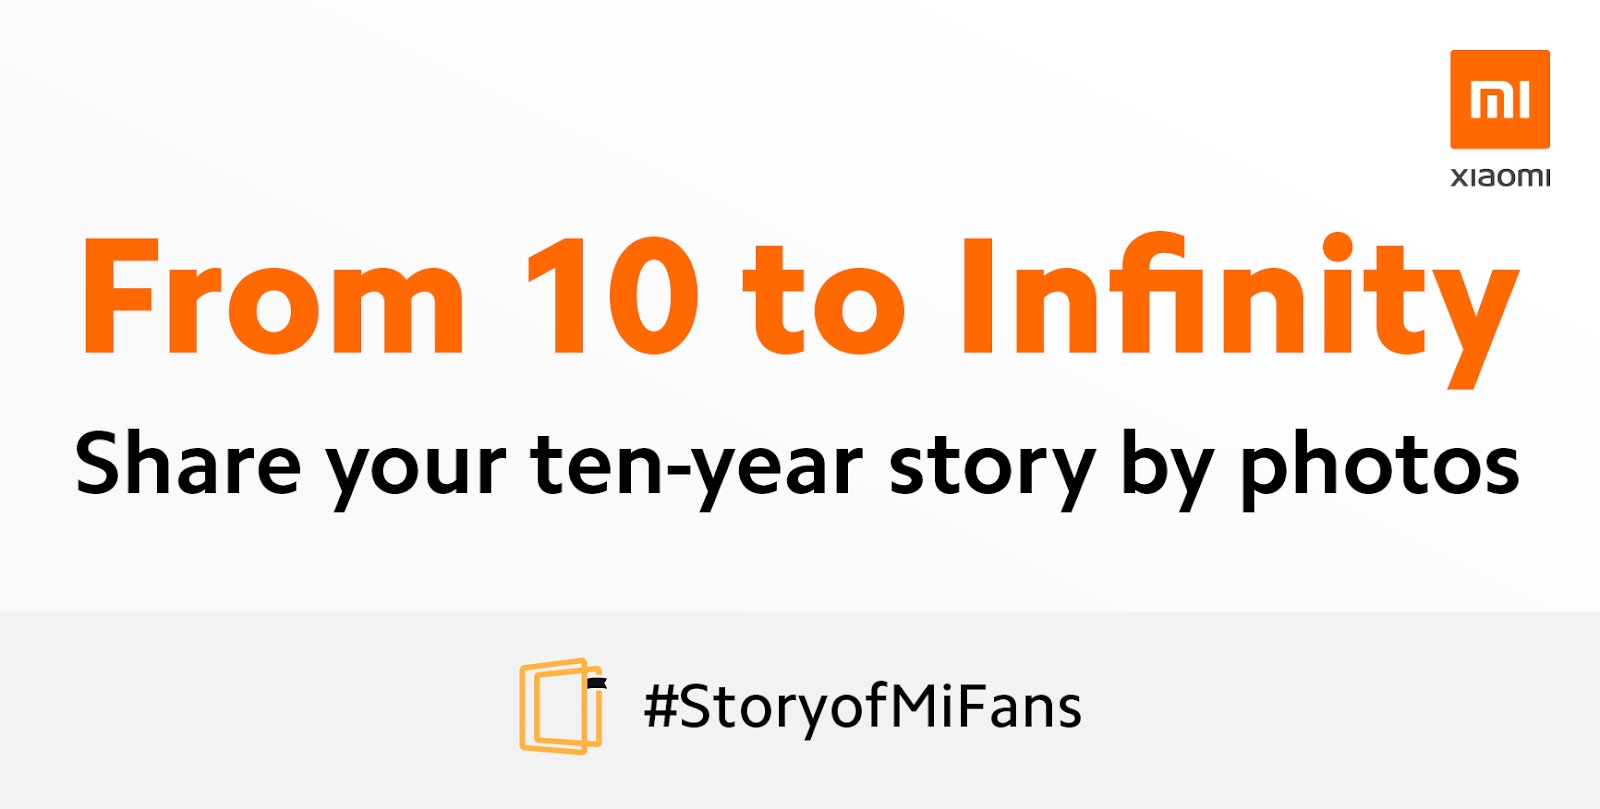 From 10 to Infinity! Share Your 10 Year Story by Photos!